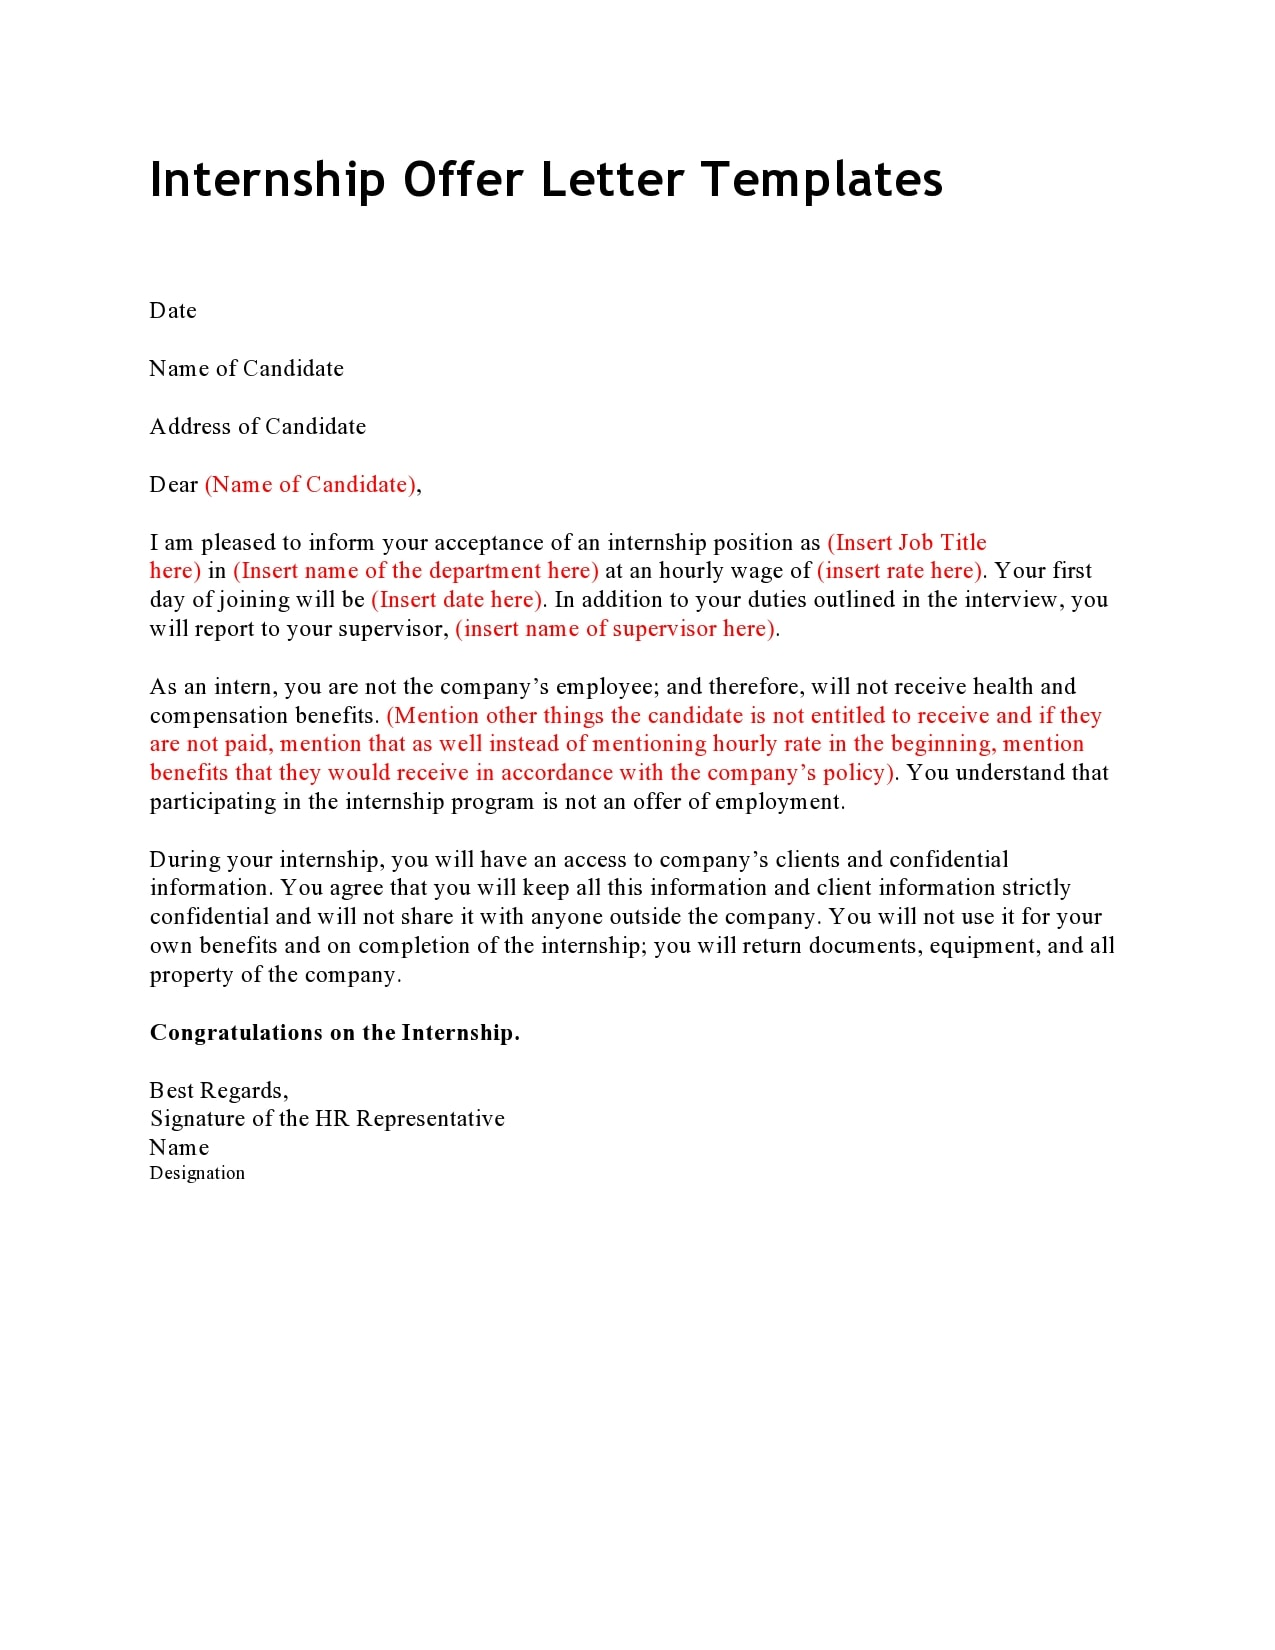 How To Ask For An Extension Of Internship Period Letter : 24 / Have